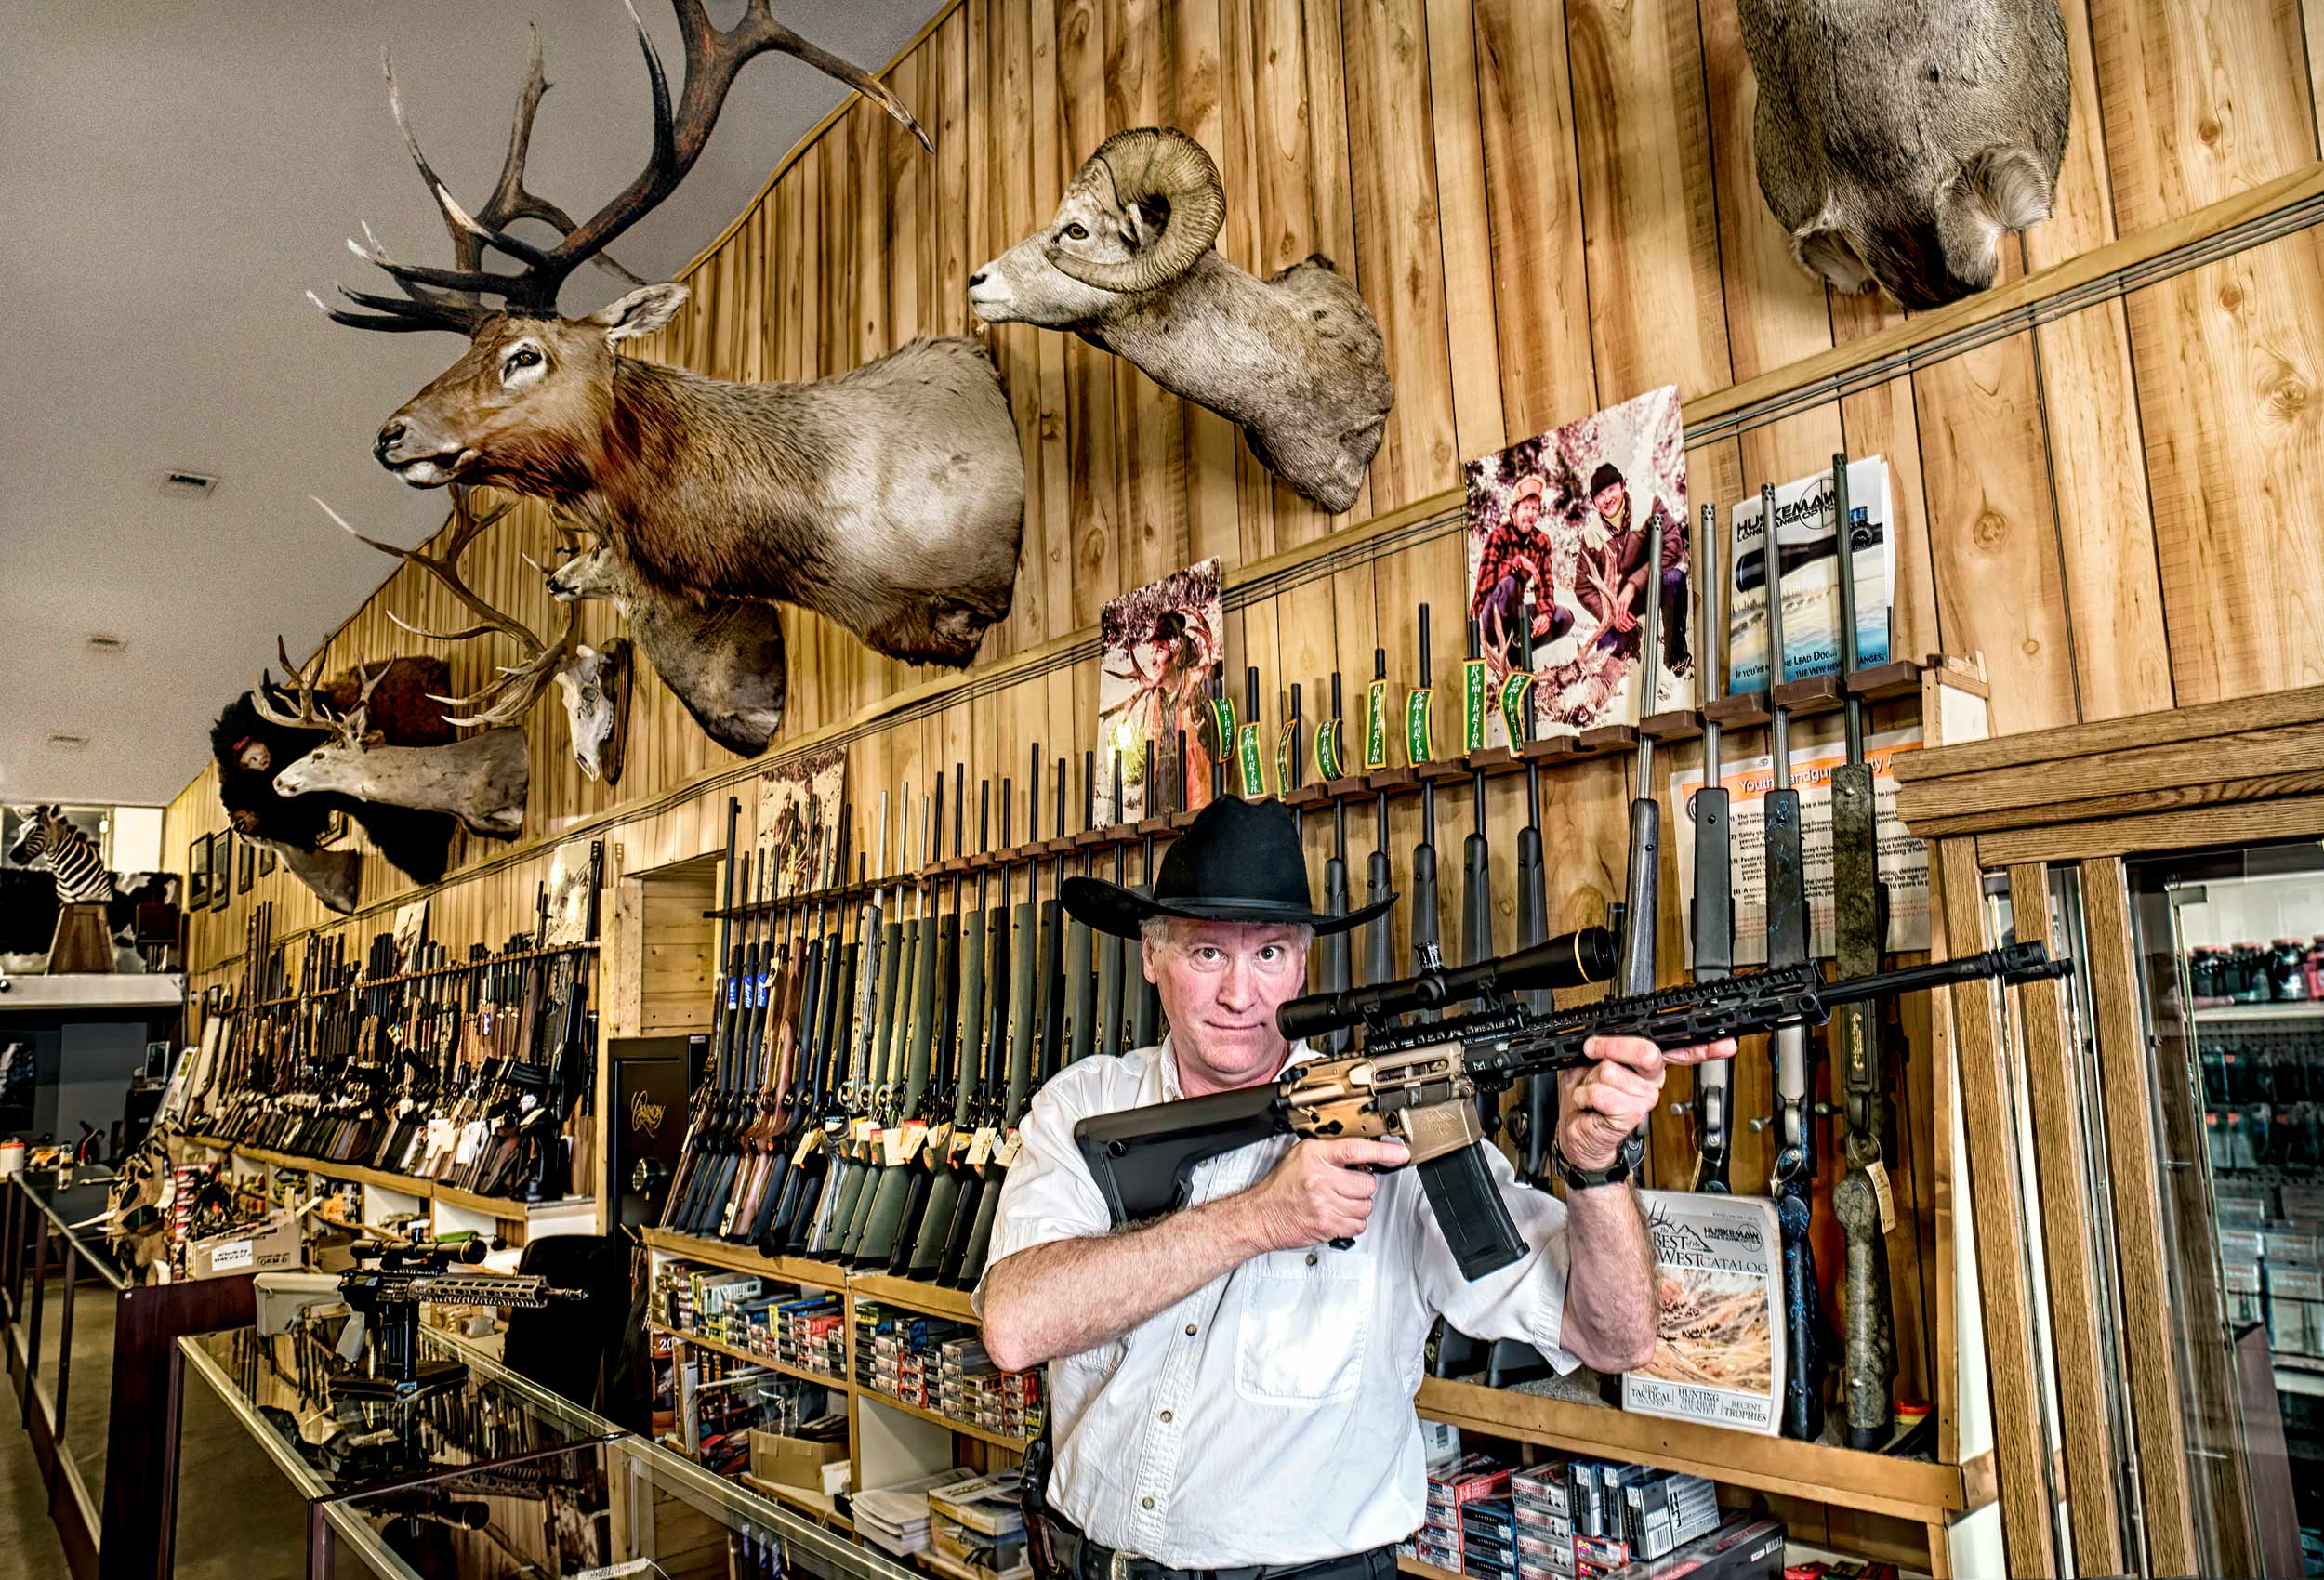 a-gun-store-owner-in-cody-wyoming-shows-off-his-weapons